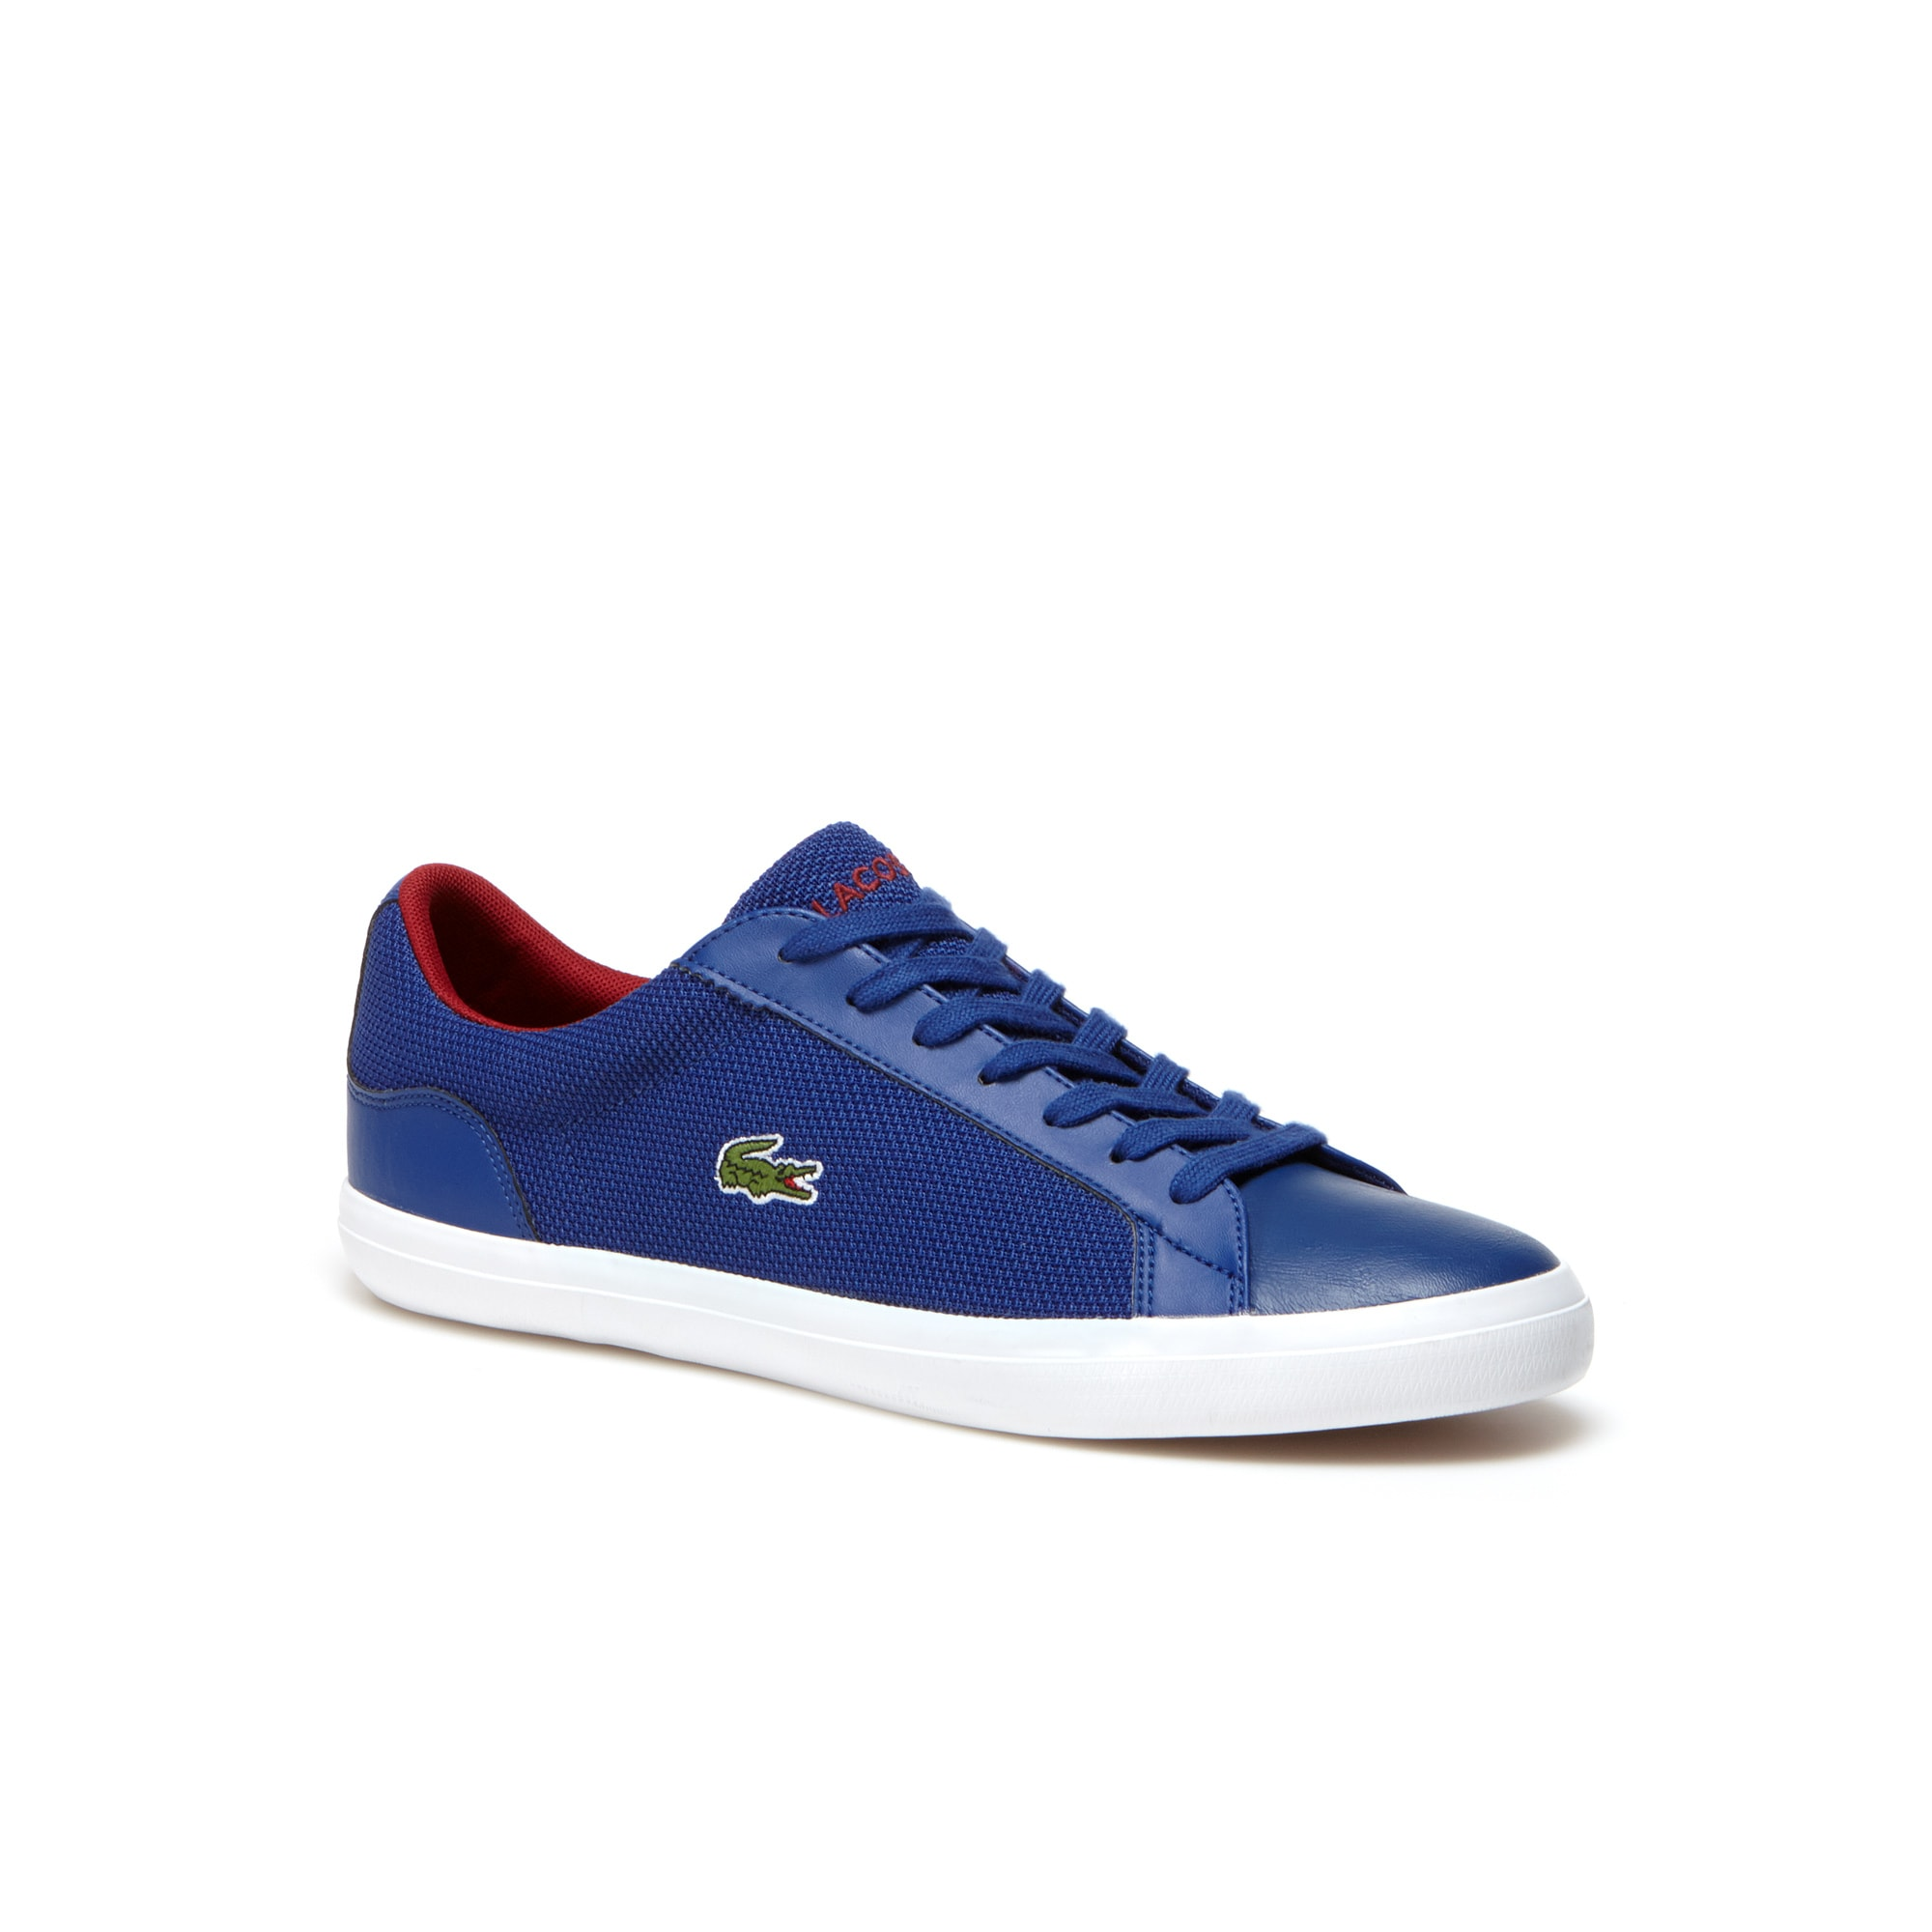 Men's Lerond Leather And Piqué Canvas Sneakers